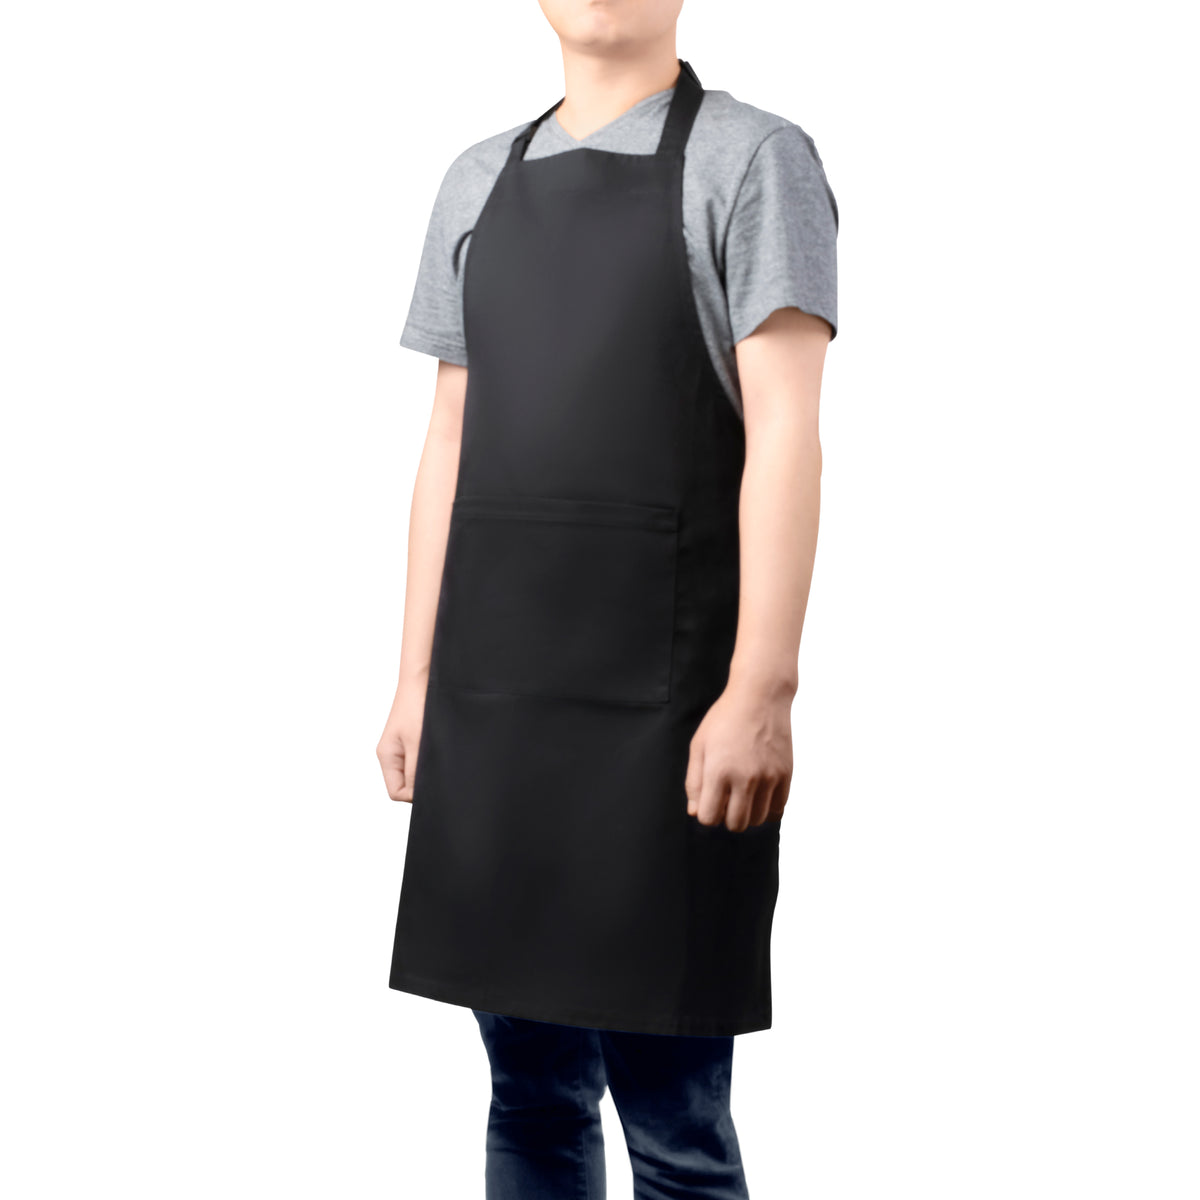 Barista Apron with 2 Front Pockets - Barista Essentials by EspressoWorks